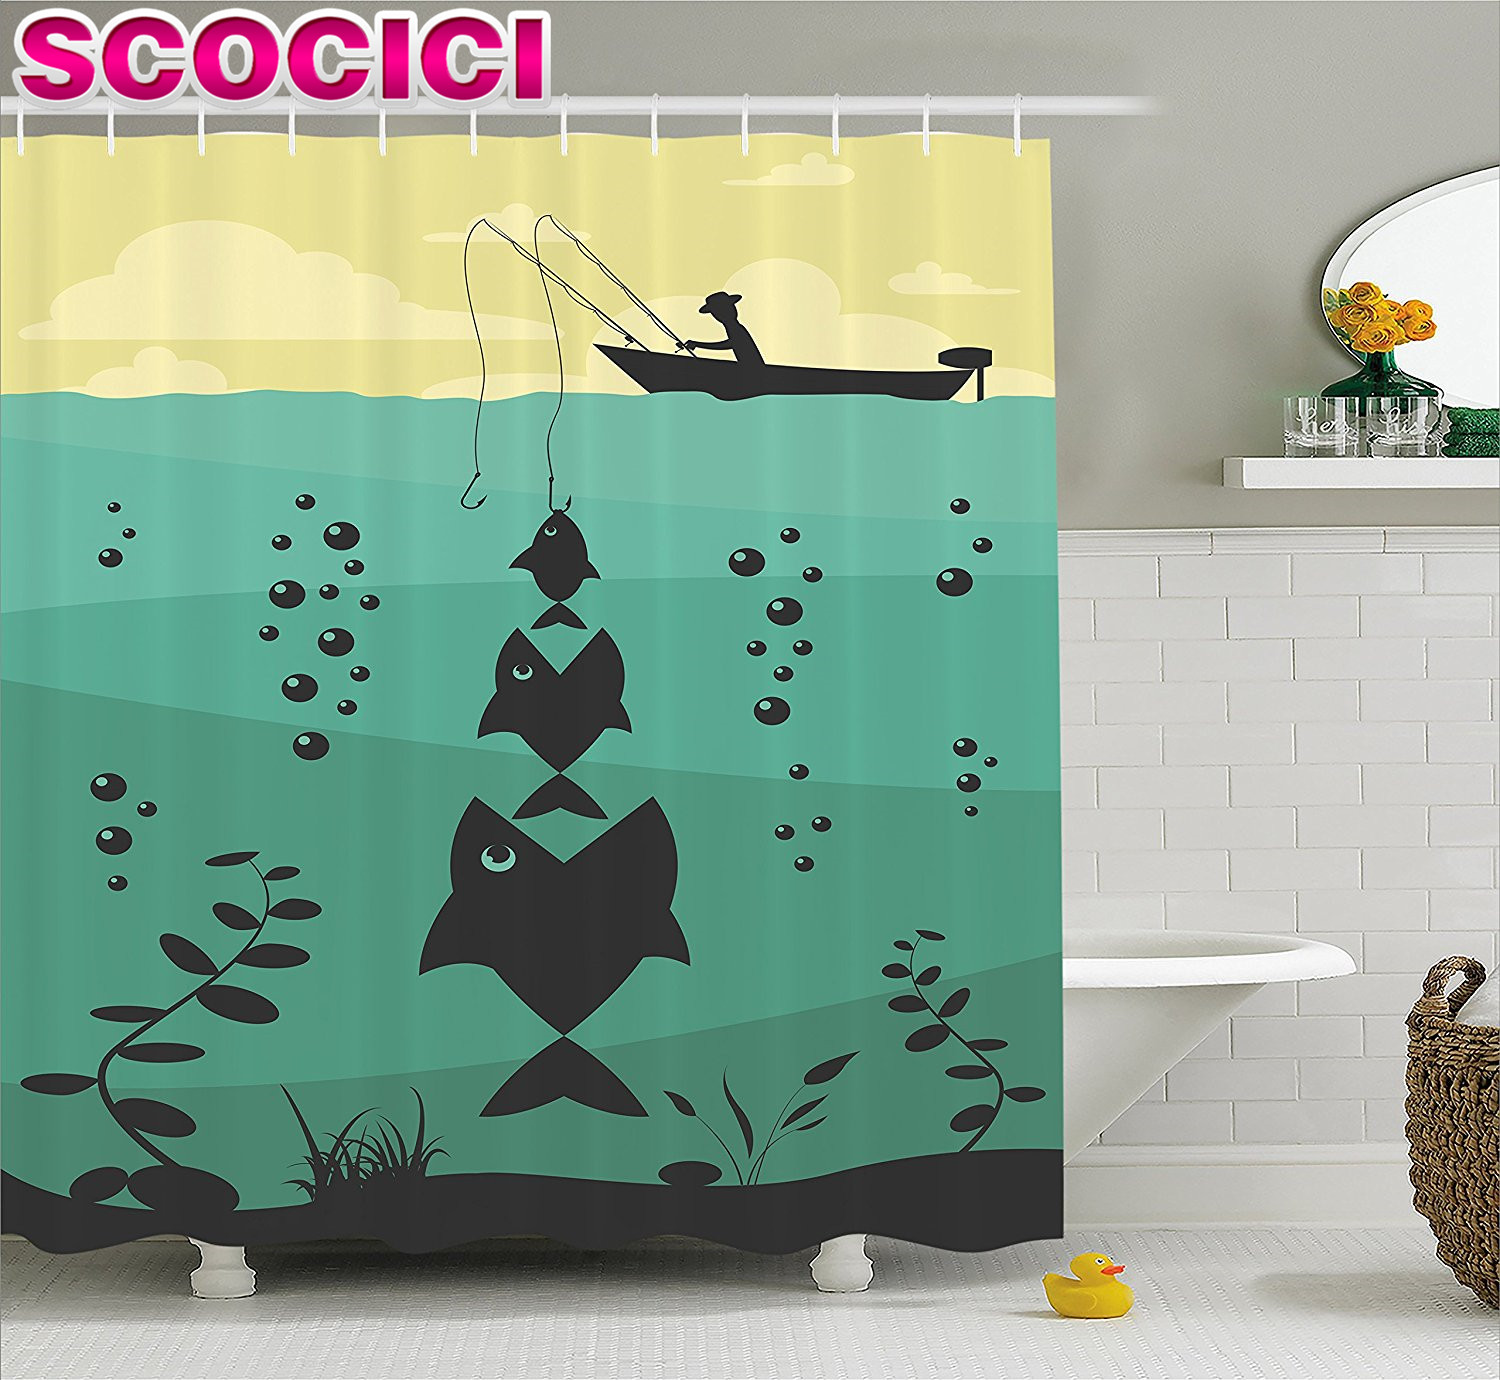 Fishing Decor Shower Curtain Big Fish Eats Little Textured Design in River  with Trawler Rod Home Decor Fabric Bathroom Decor Set